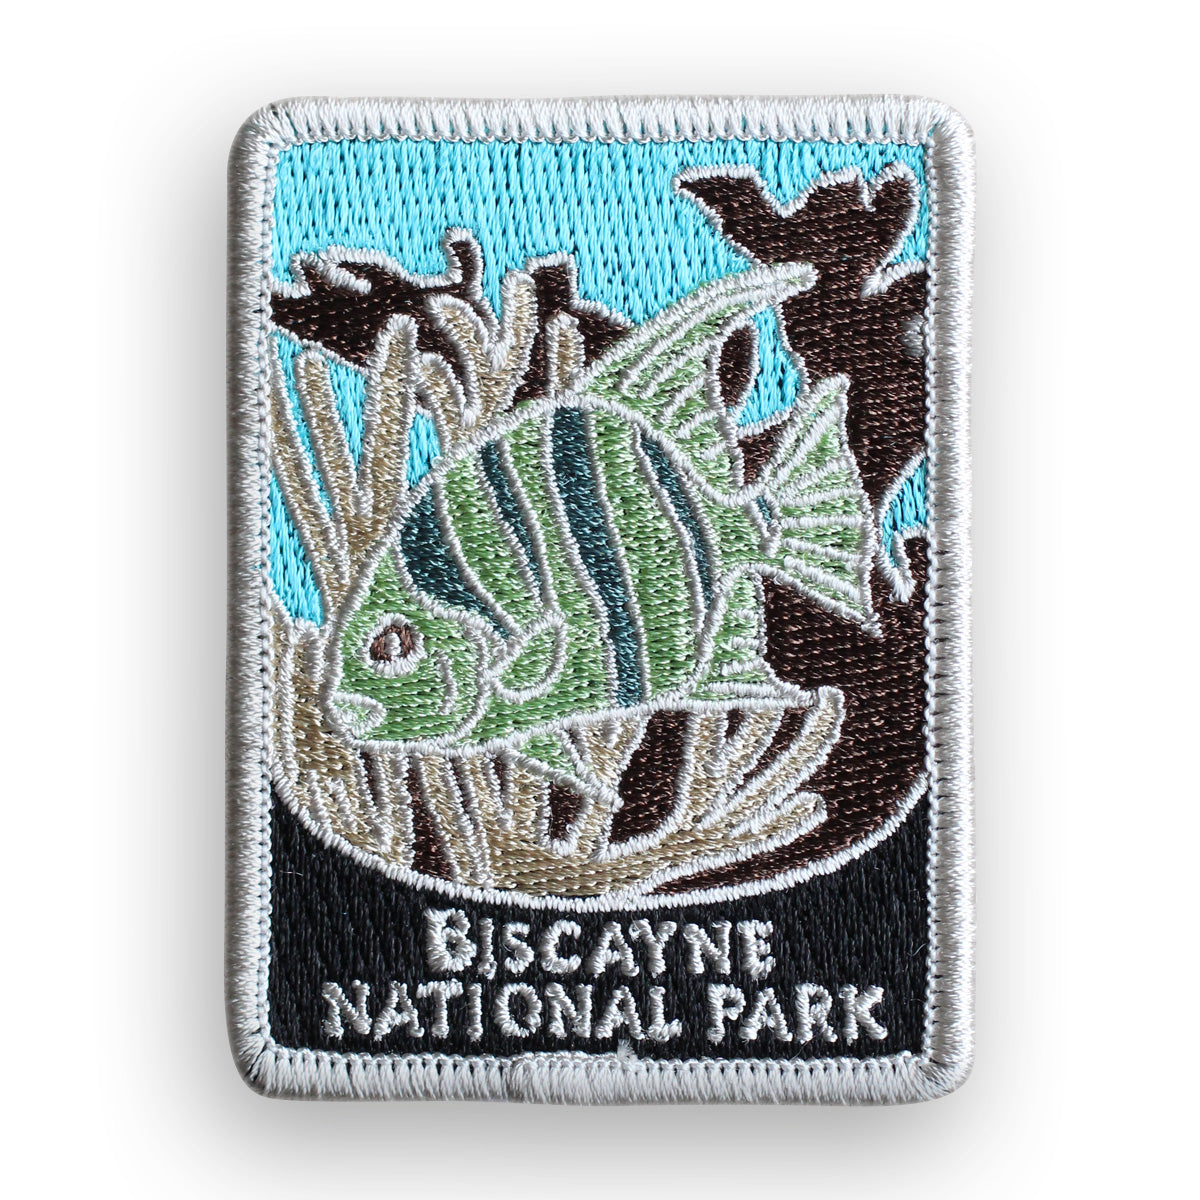 Biscayne National Park Patch